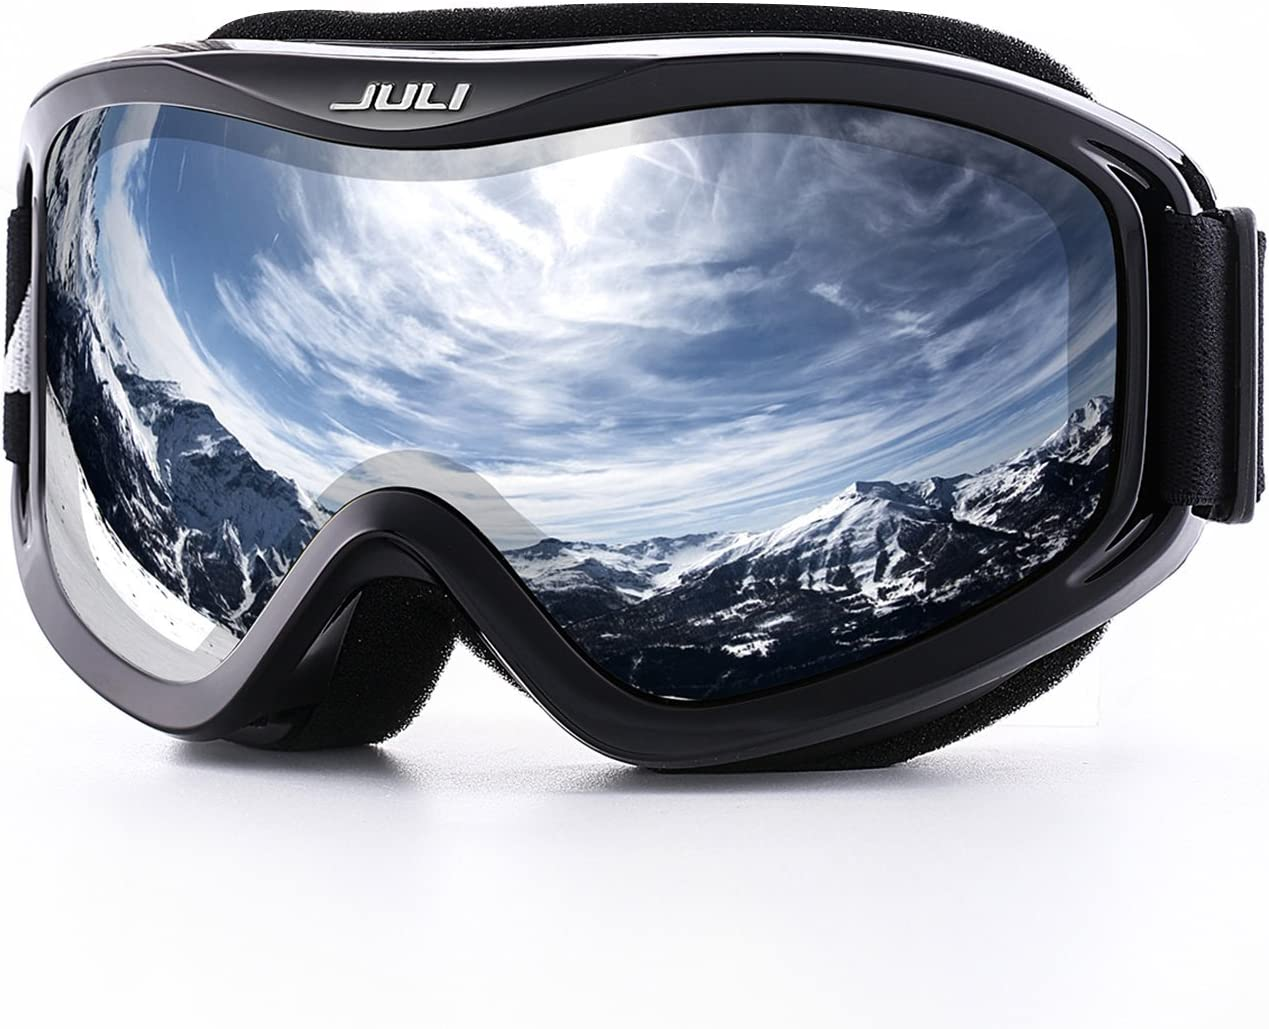 Juli Ski Goggles,Winter Snow Sports Snowboard Goggles with Anti-Fog UV Protection Double Lens for Men Women Youth Snowmobile Skiing Skating